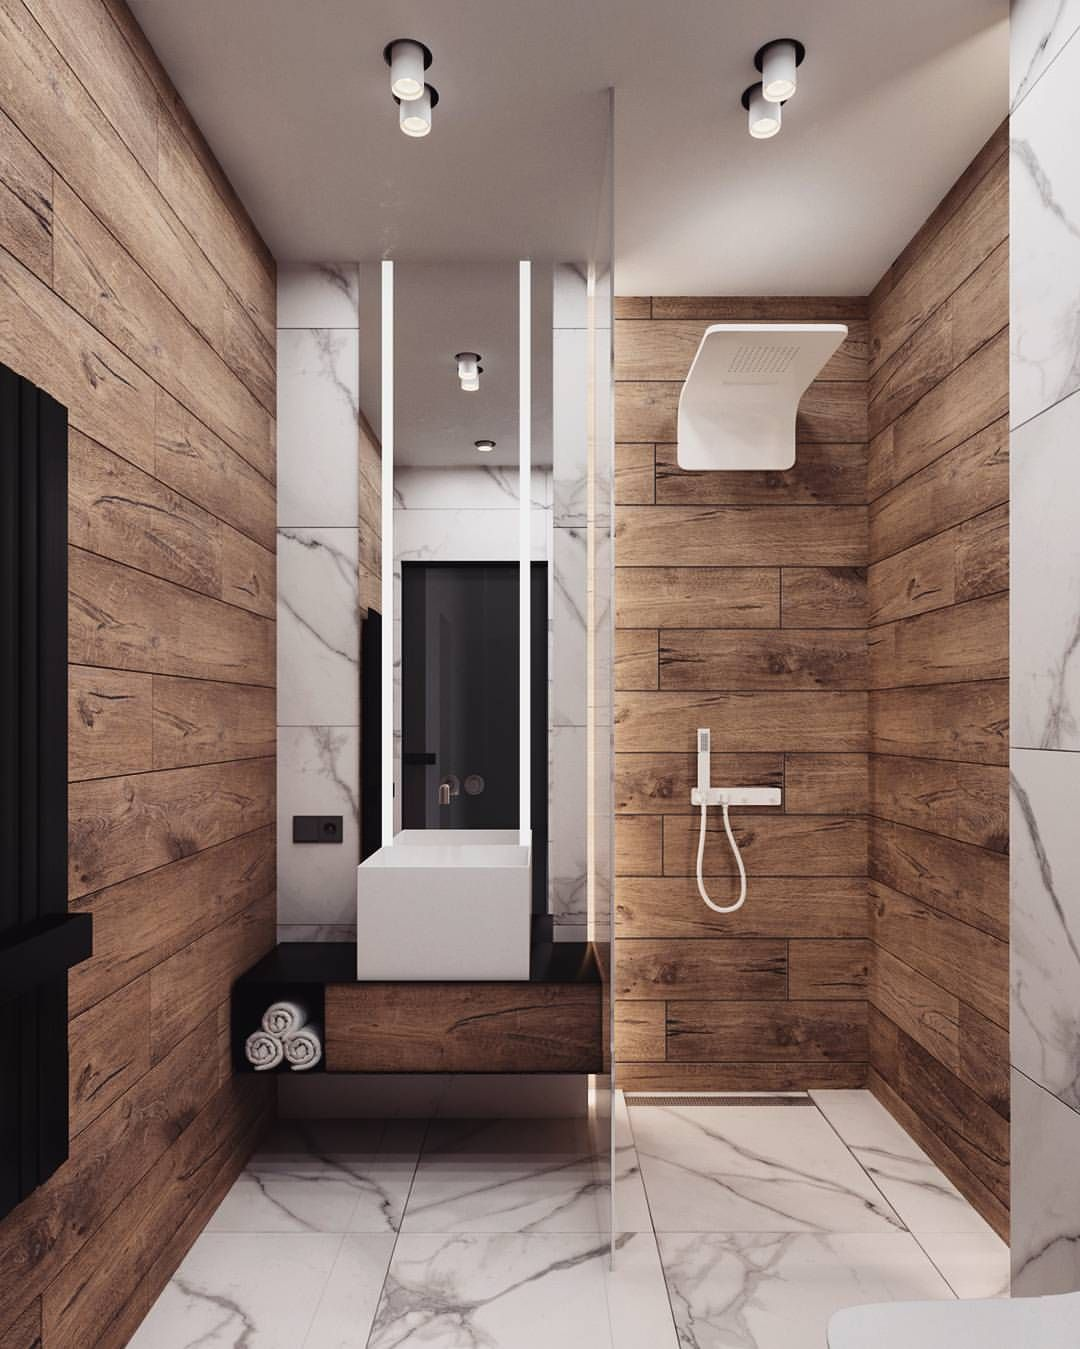 Bathroom interior designs ideas banos inspiration likes comments all of renders allofrenders on instagram also remodel you must see for your lovely home rh pinterest